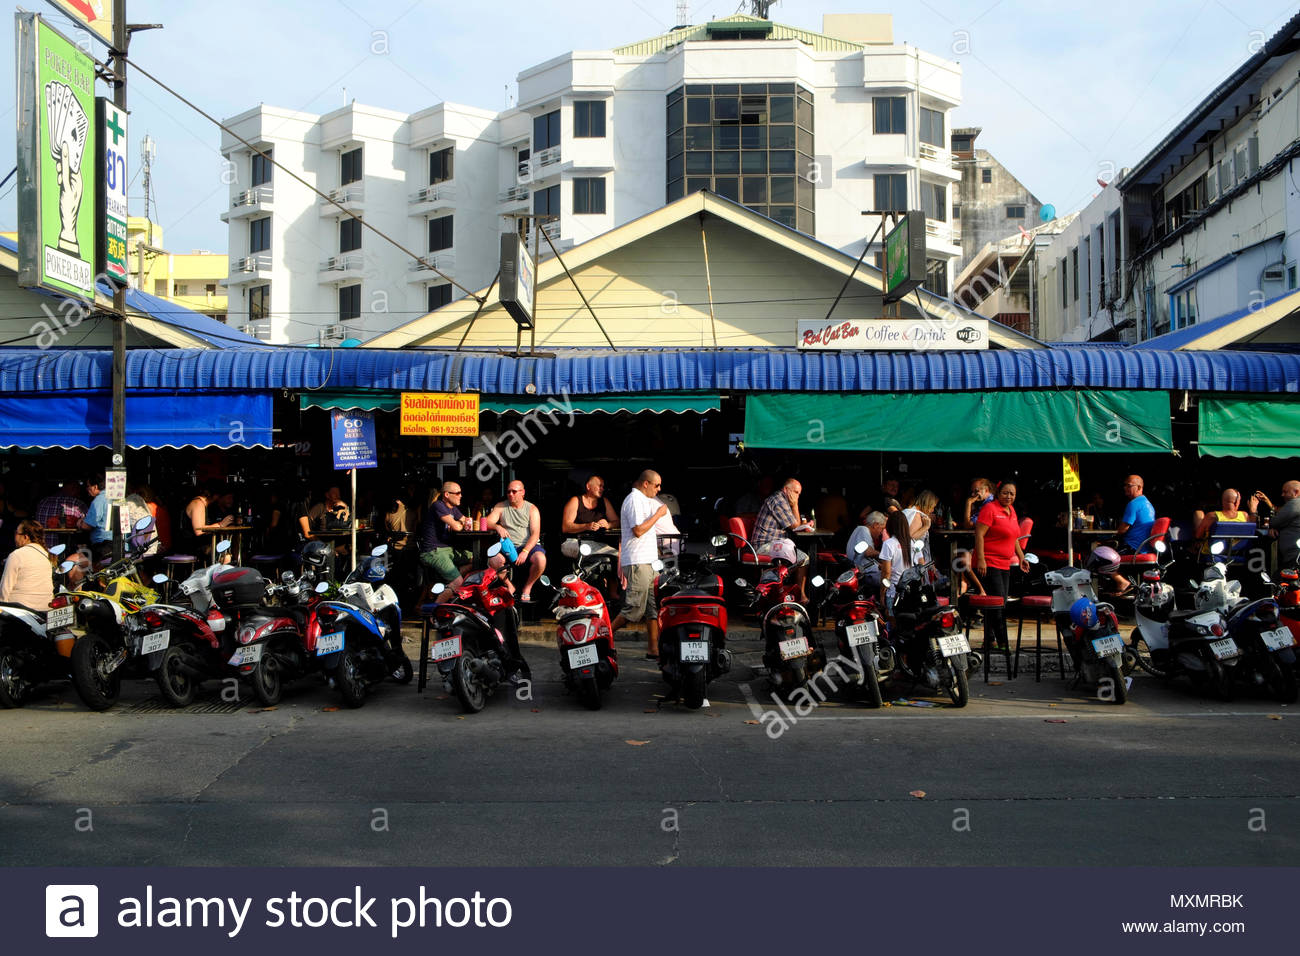 Asien, Thailand, Chonburi, Pattaya, Bar an der Beach Road, tagsüber *** Local Caption ***  Alcohol, alcoholic beverages, outside, building, animates,  - Stock Image